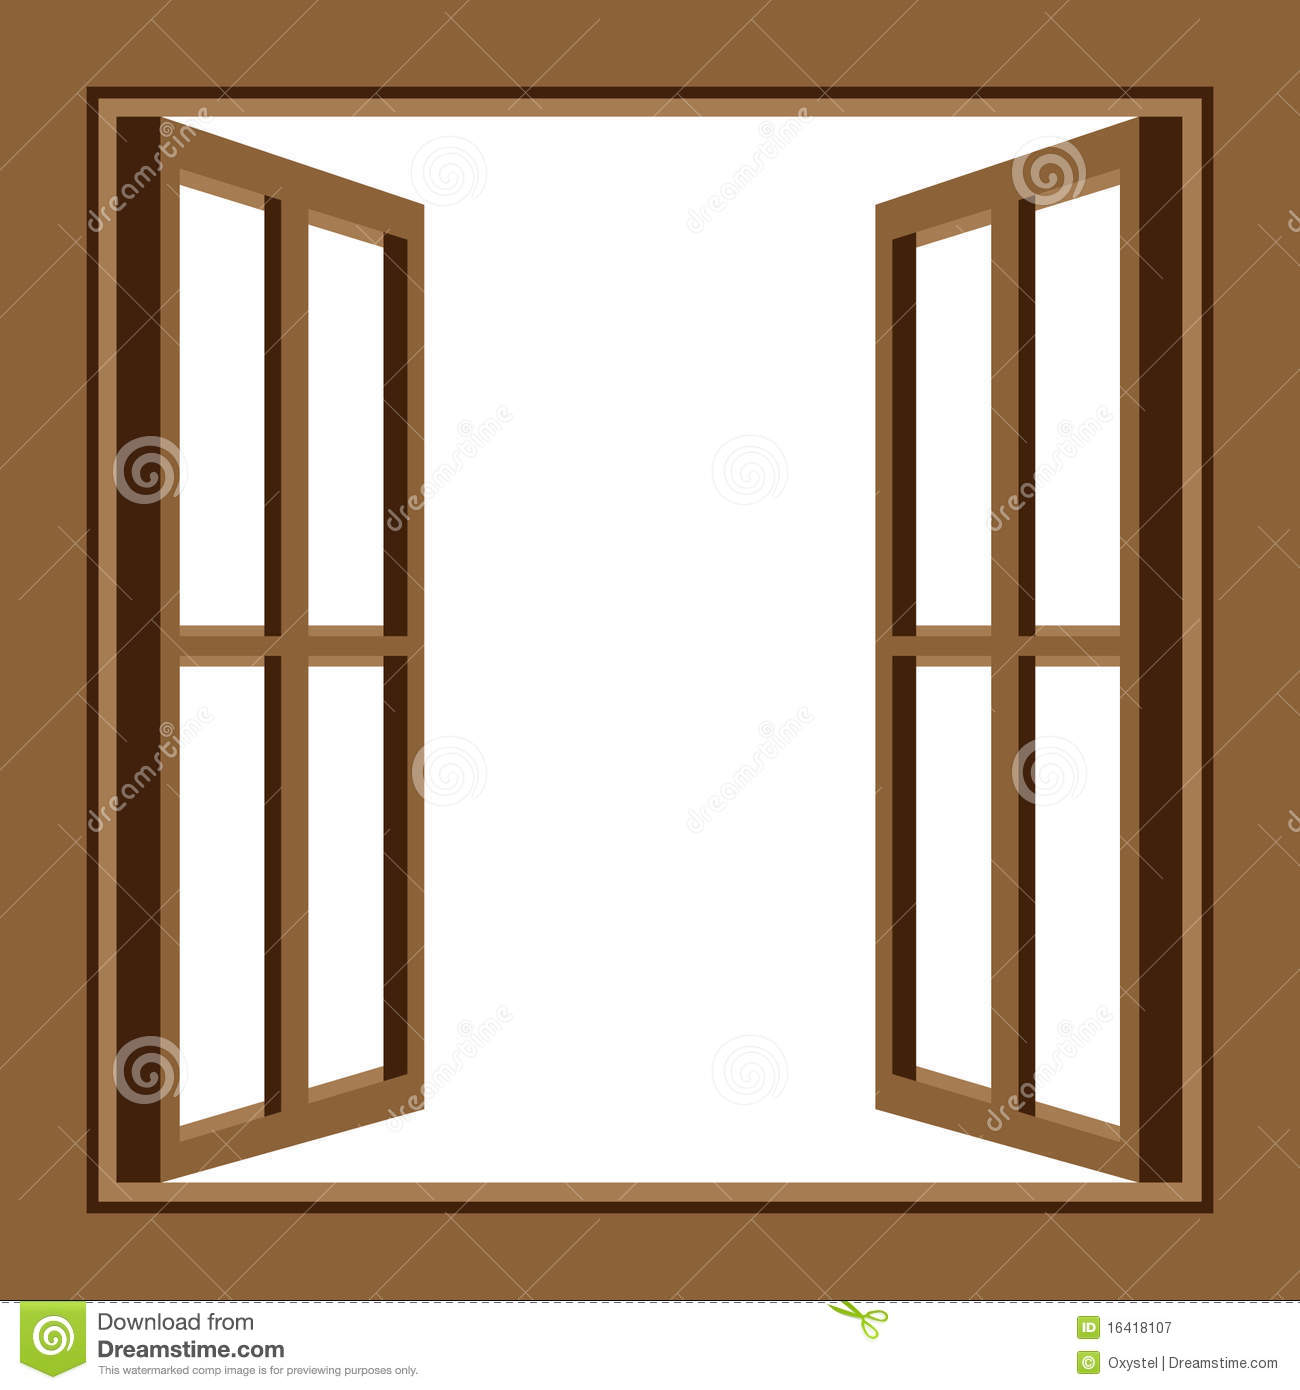 Open window clipart Clipground